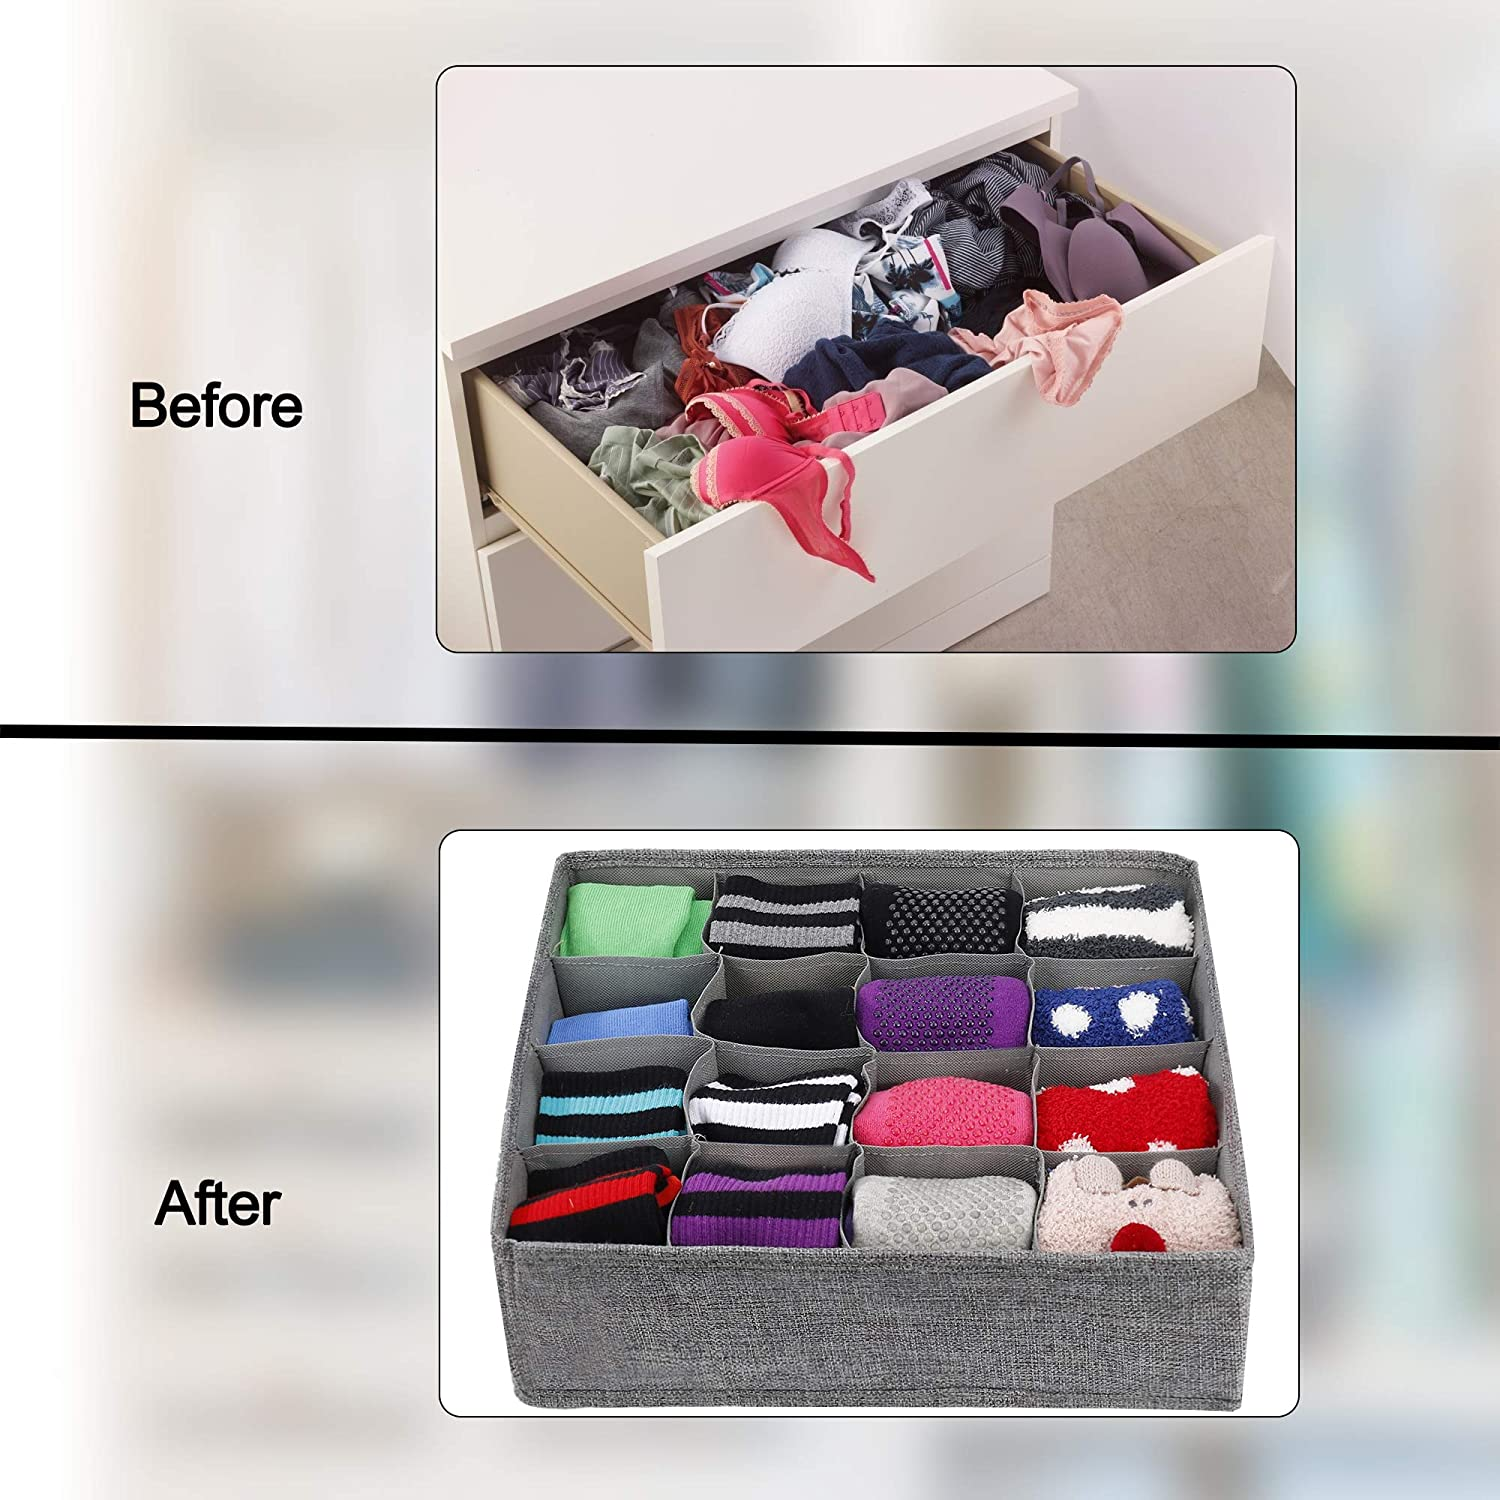 Ties Collapsible Fabric Cabinet Closet Wardrobe Organization Storage Boxes for Clothes MaoXinTek Drawer Organizer Divider for Socks Underwear Baby Nursery Pants 32 Cells// 2 Pack, Gray Lingerie